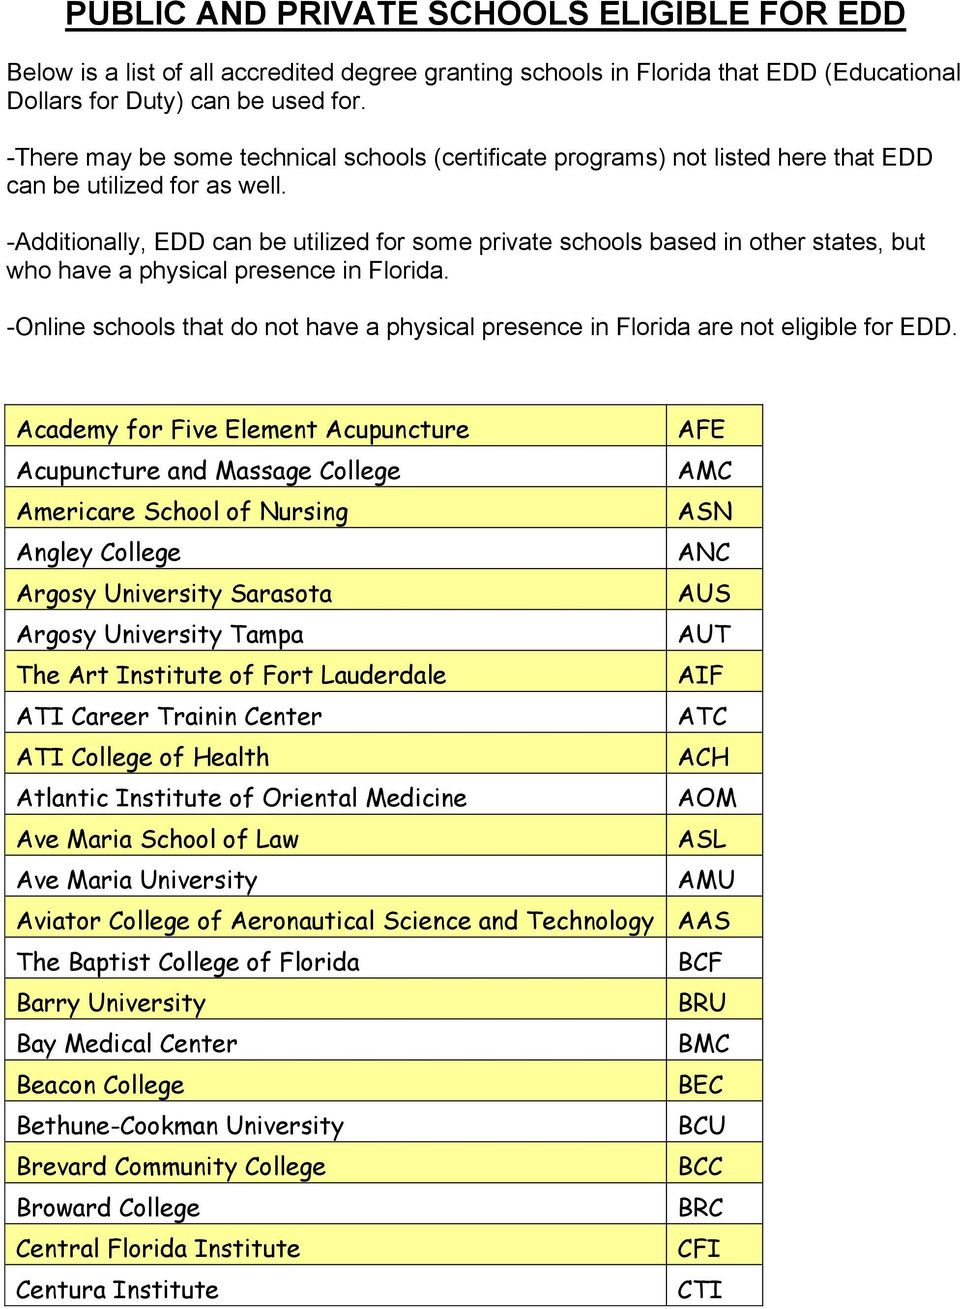 -Additionally, EDD can be utilized for some private schools based in other states, but who have a physical presence in Florida.